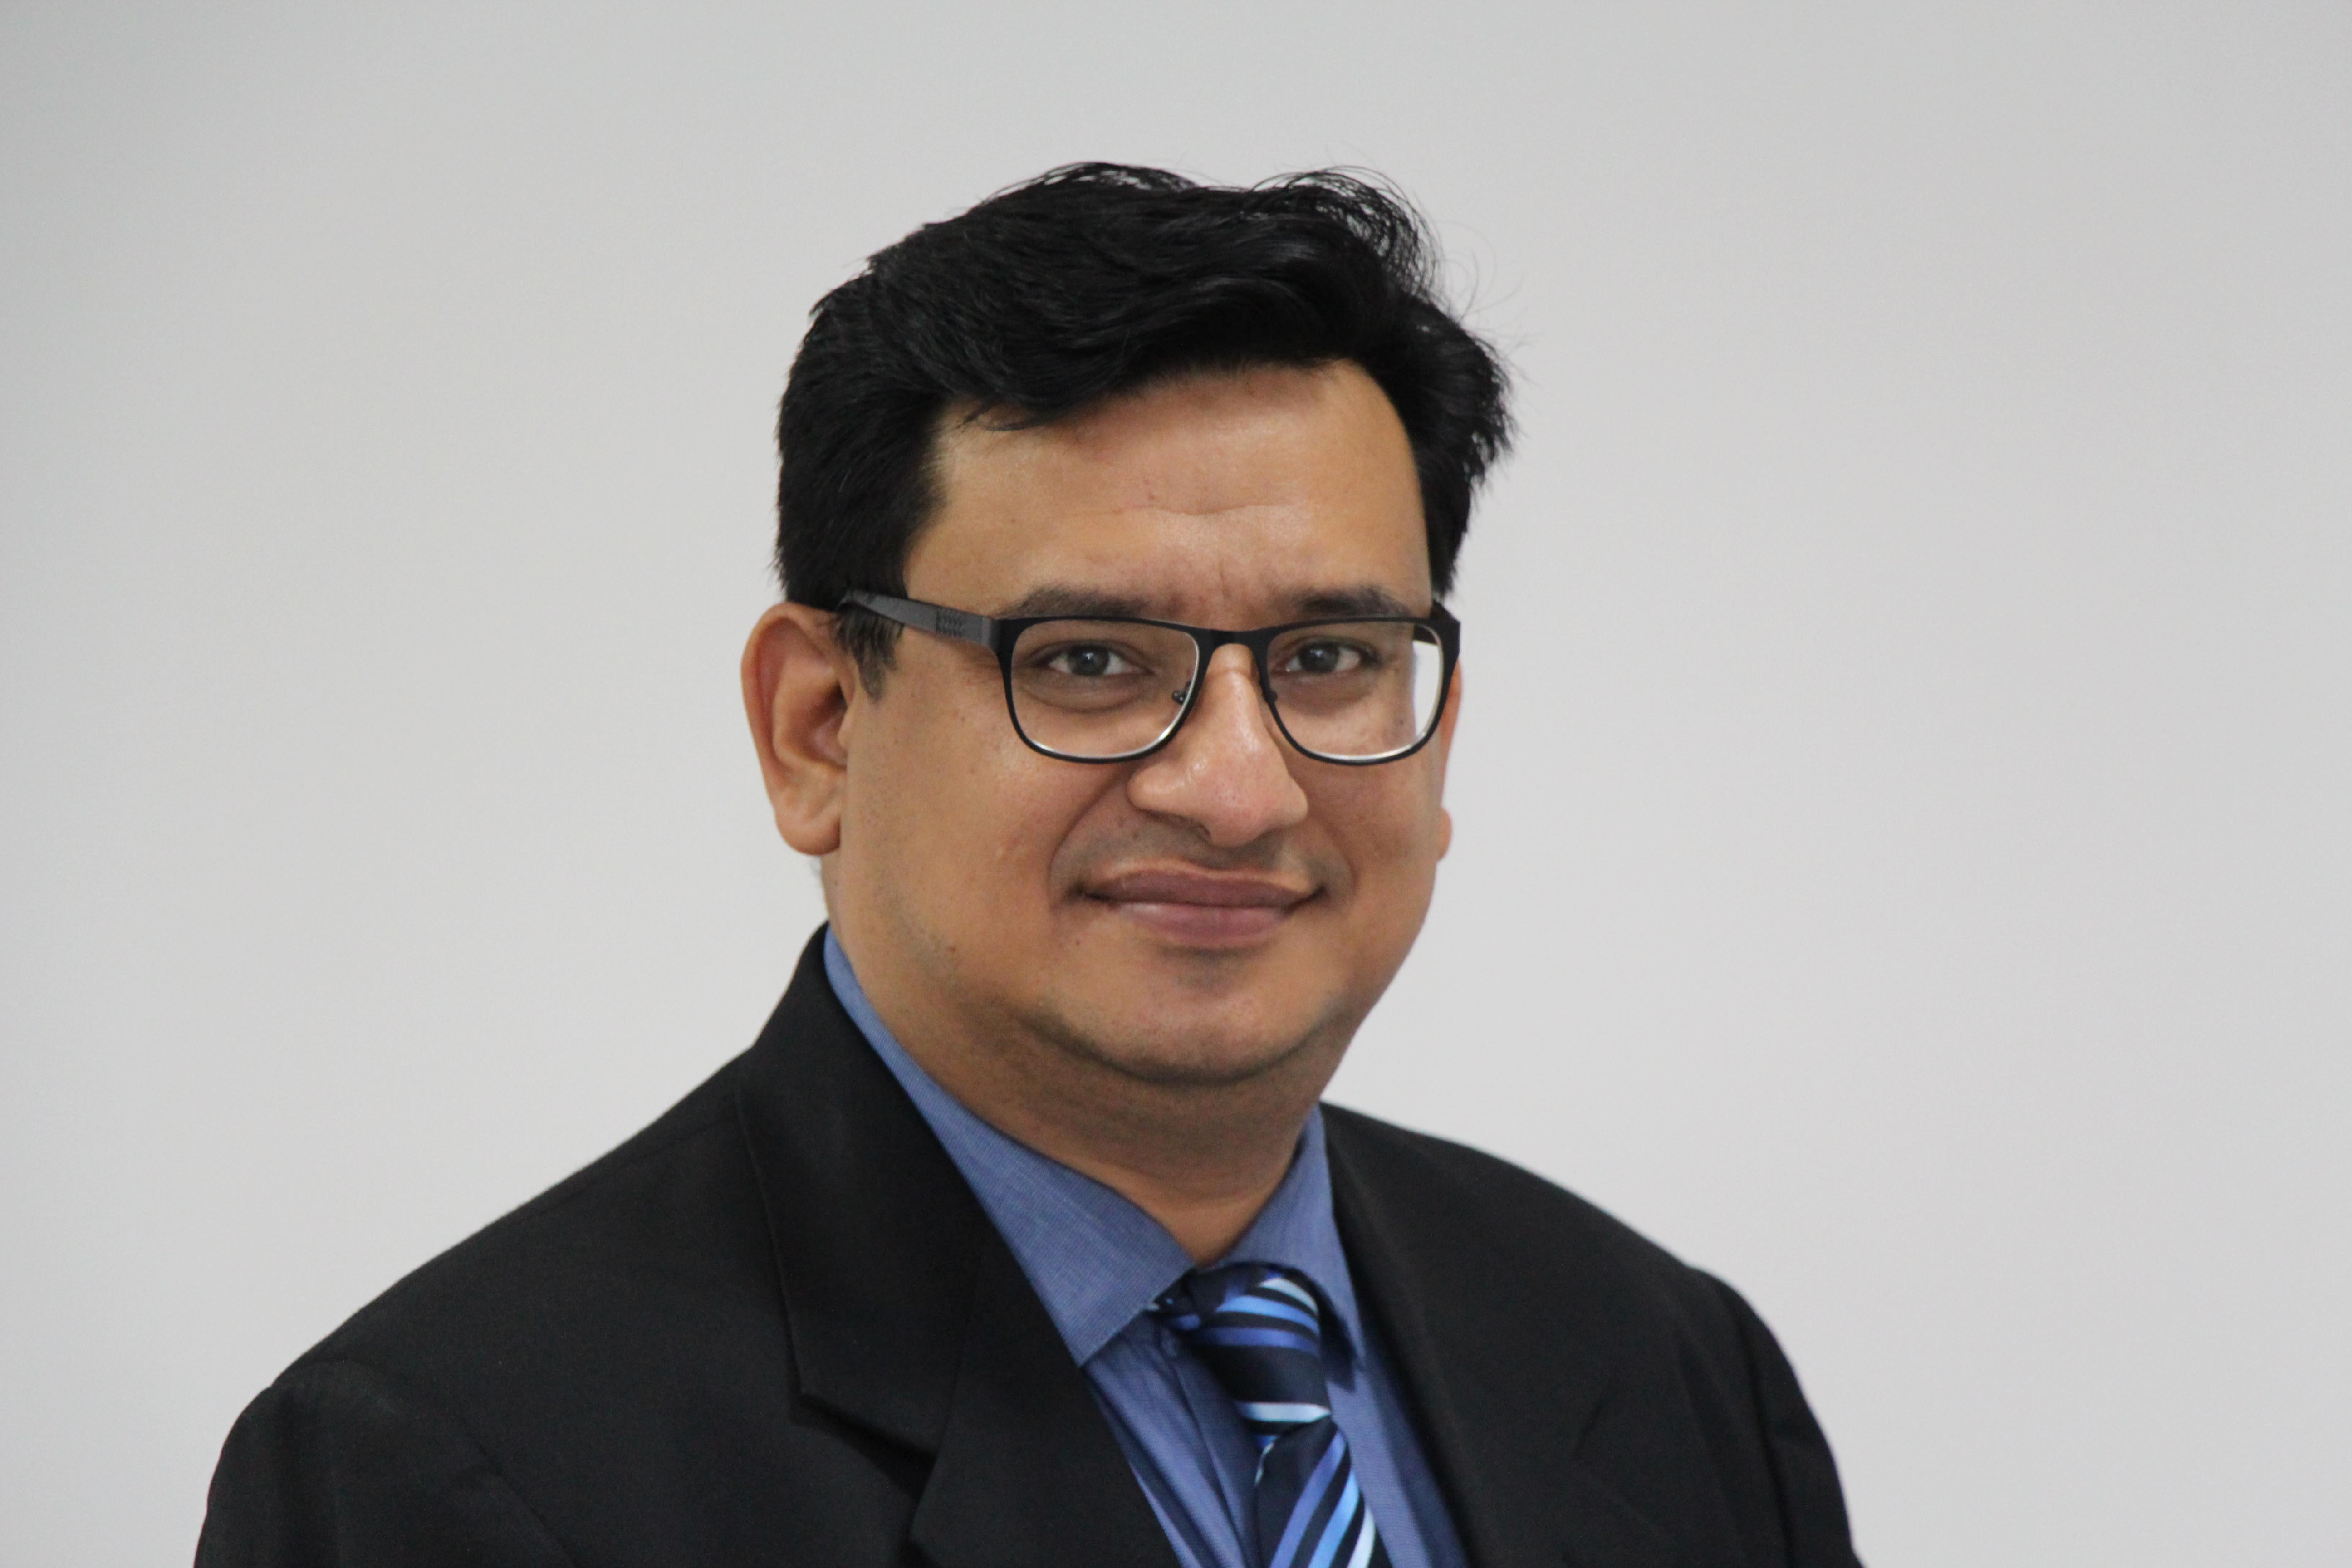 Sambit Misra, the new chief operating officer at Ricoh